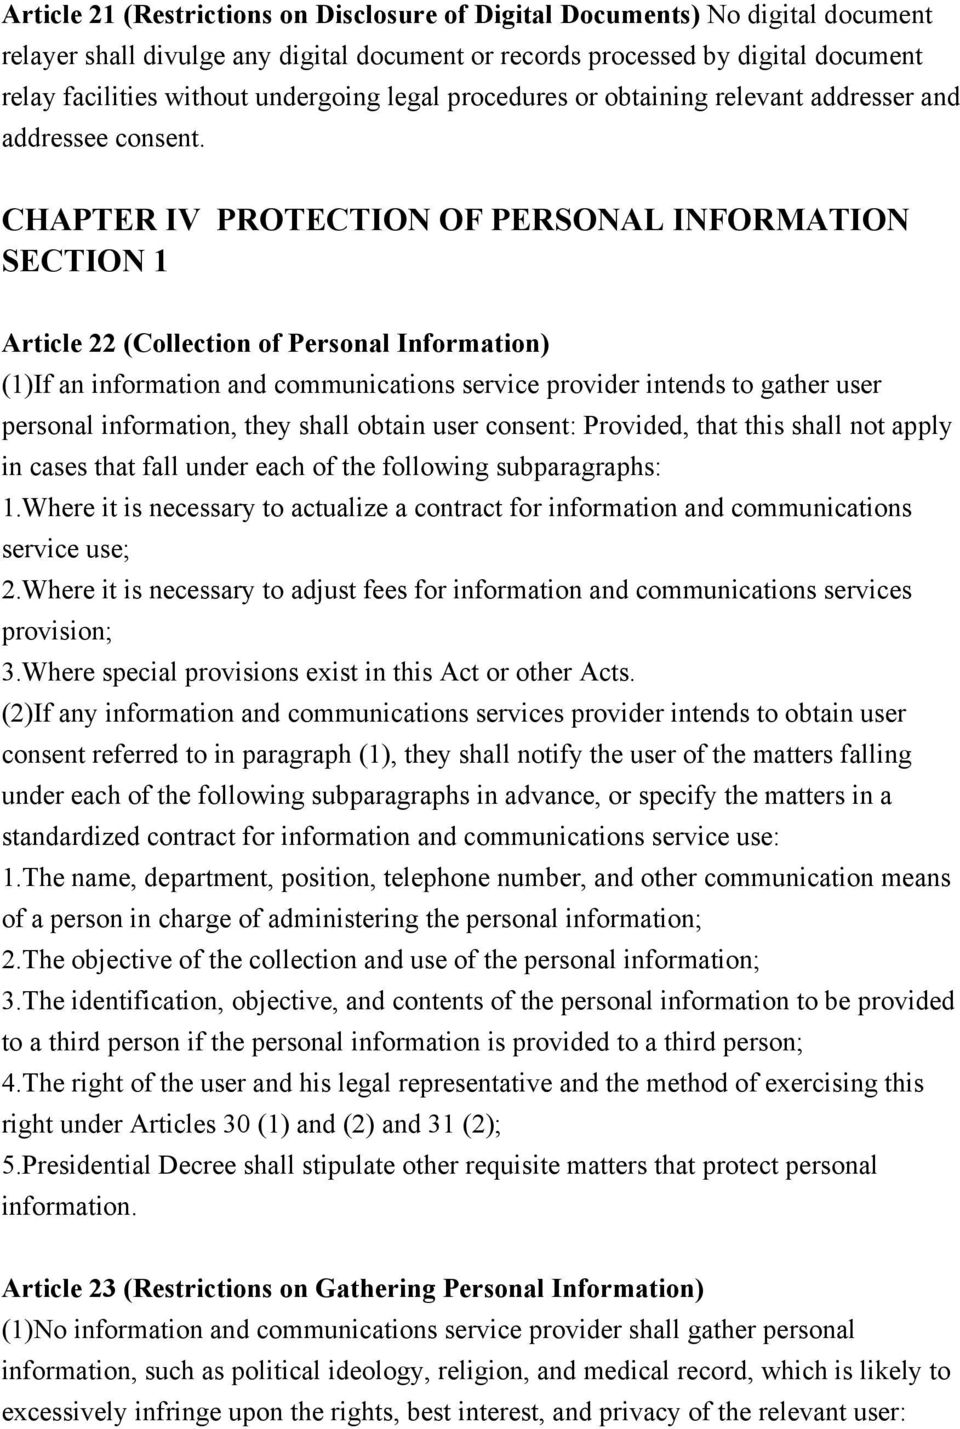 CHAPTER IV PROTECTION OF PERSONAL INFORMATION SECTION 1 Article 22 (Collection of Personal Information) (1)If an information and communications service provider intends to gather user personal